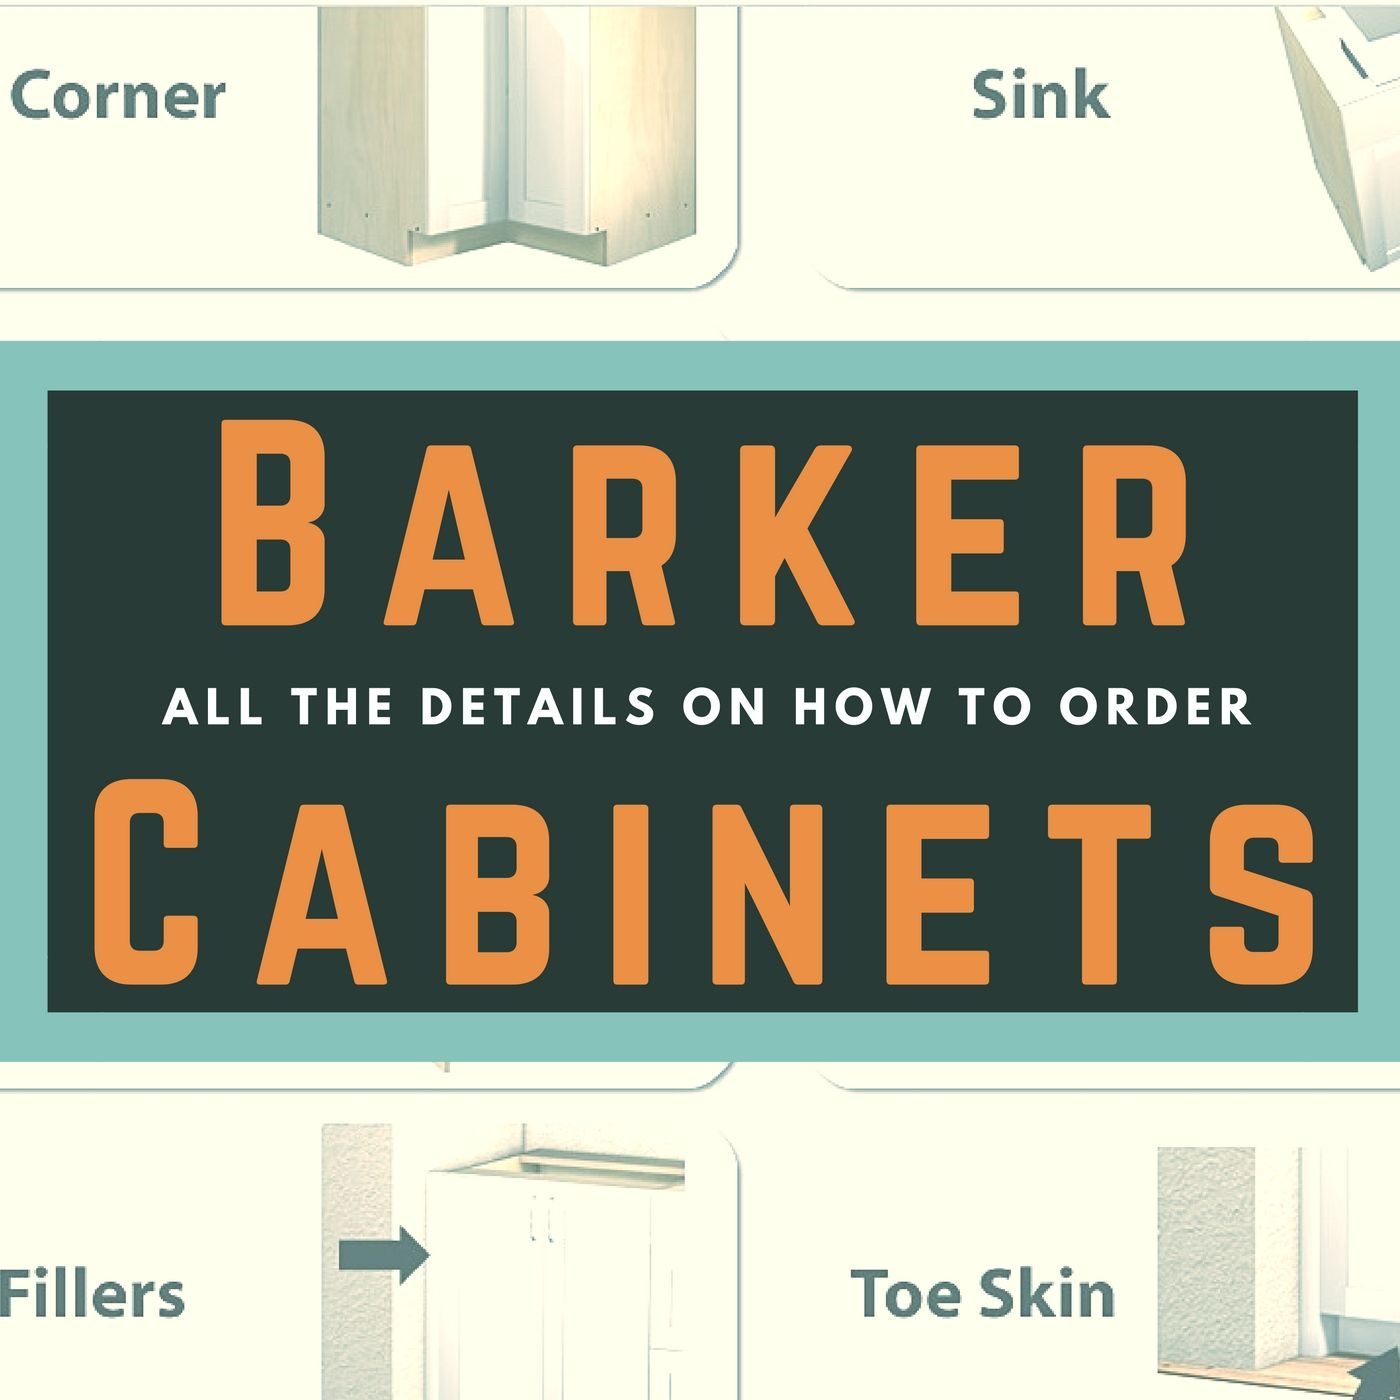 Barker Cabinets Are An Excellent RTA (ready To Assemble) Options, But  Ordering Barker Cabinets Can Be A Little Tricky. I Am Going To Teach You  Everything.